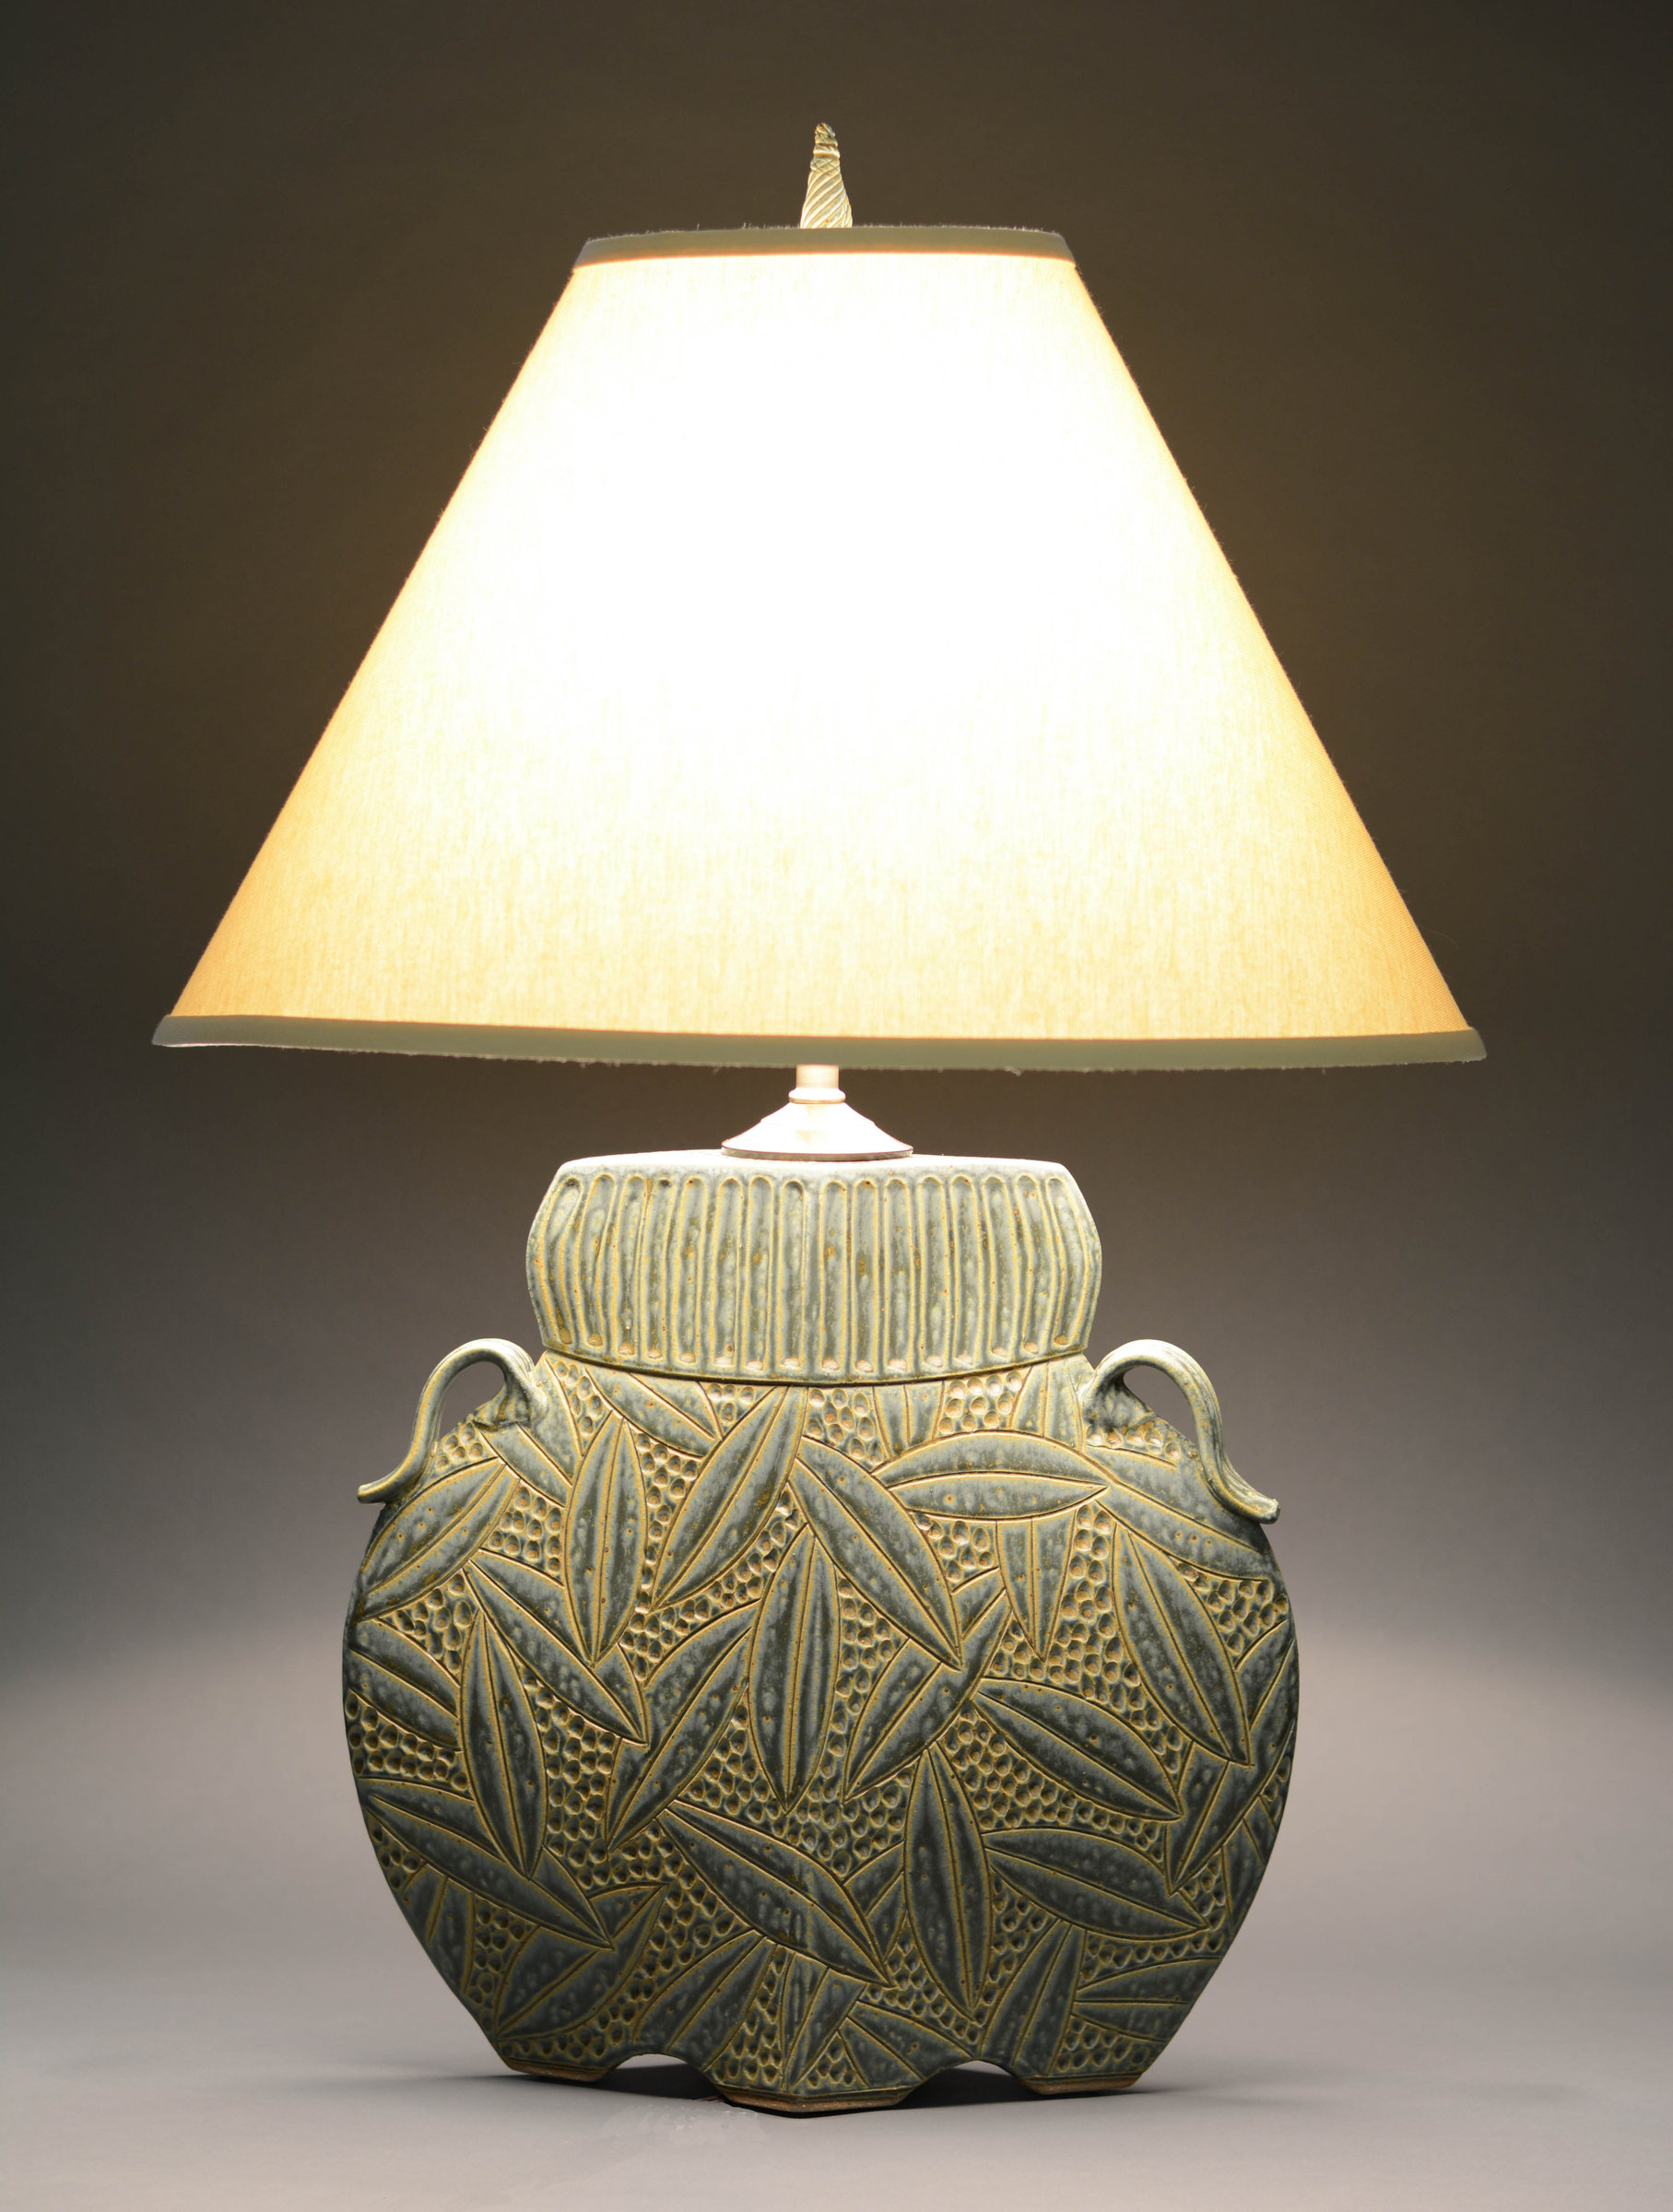 Arts and Crafts Lamp in Sage - Ceramic Table Lamp - by Jim and Shirl Parmentier